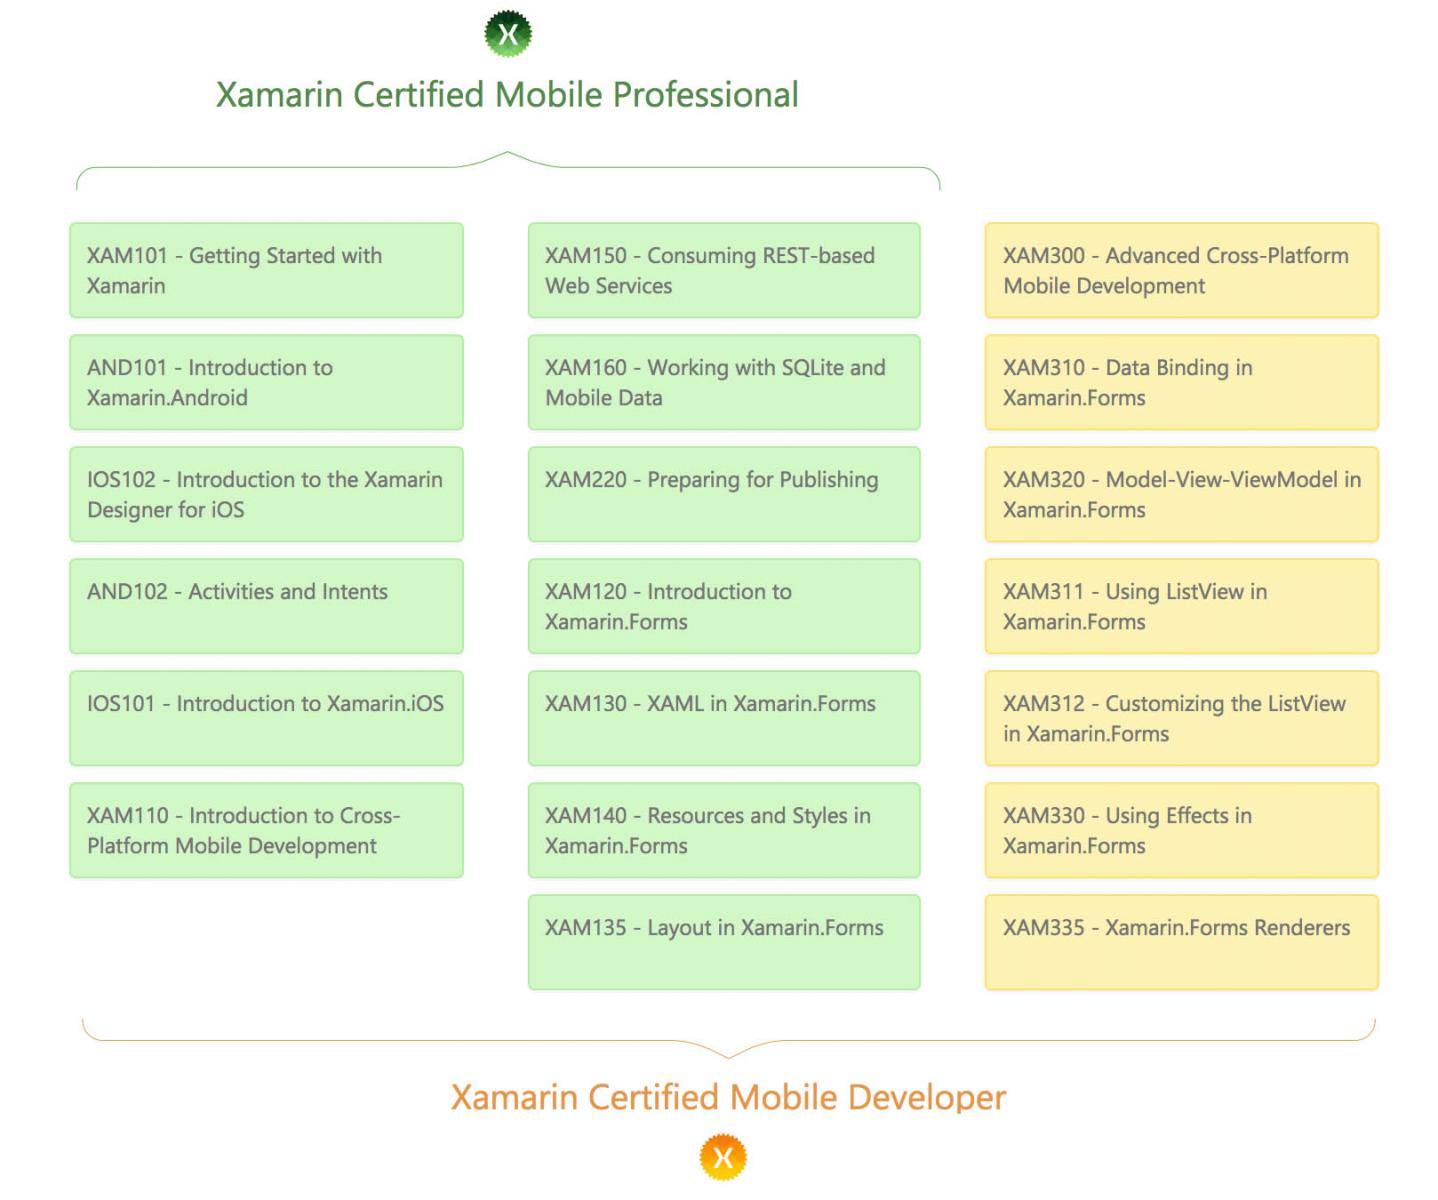 Xamarin Certified Mobile Professional